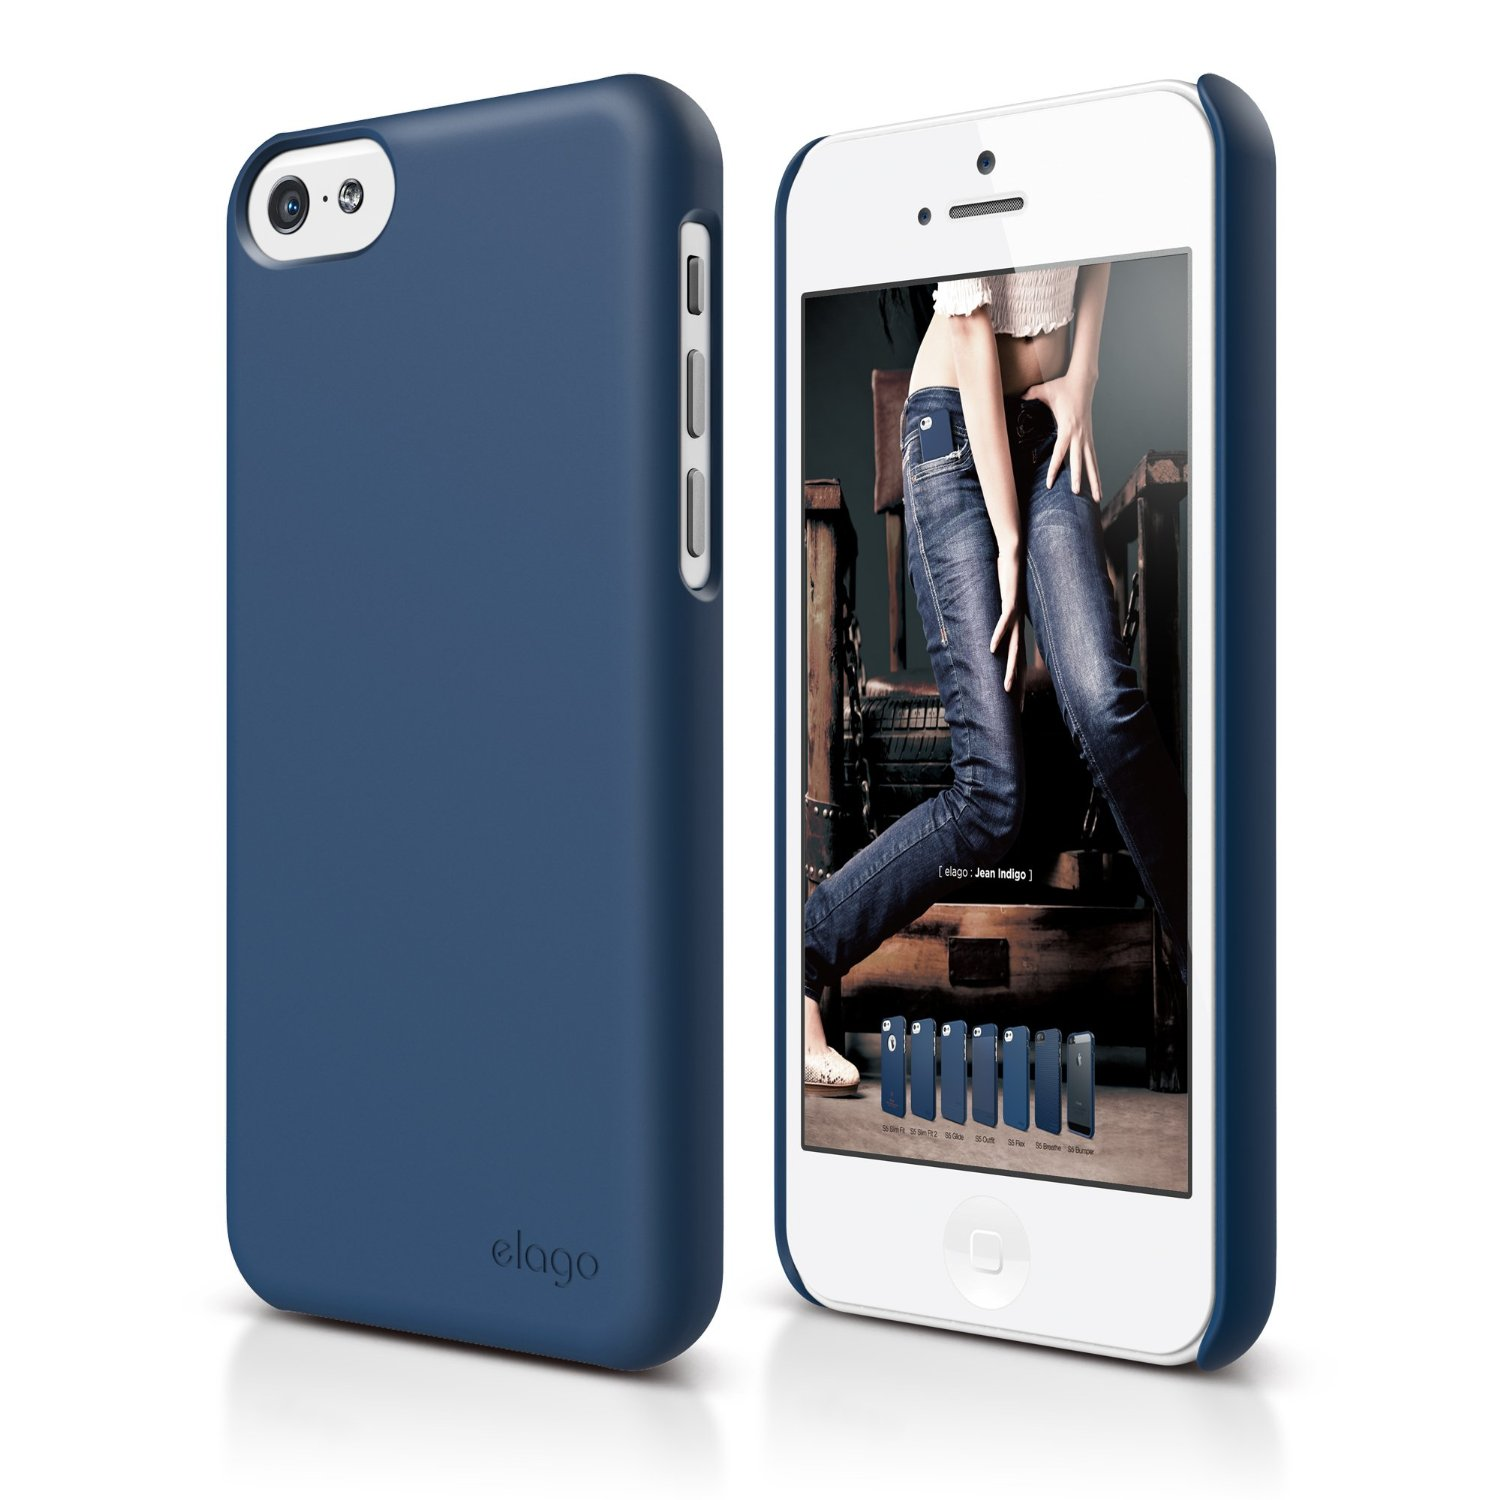 Updated: Amazon Begins Selling Elago 'iPhone 5C' Cases Online